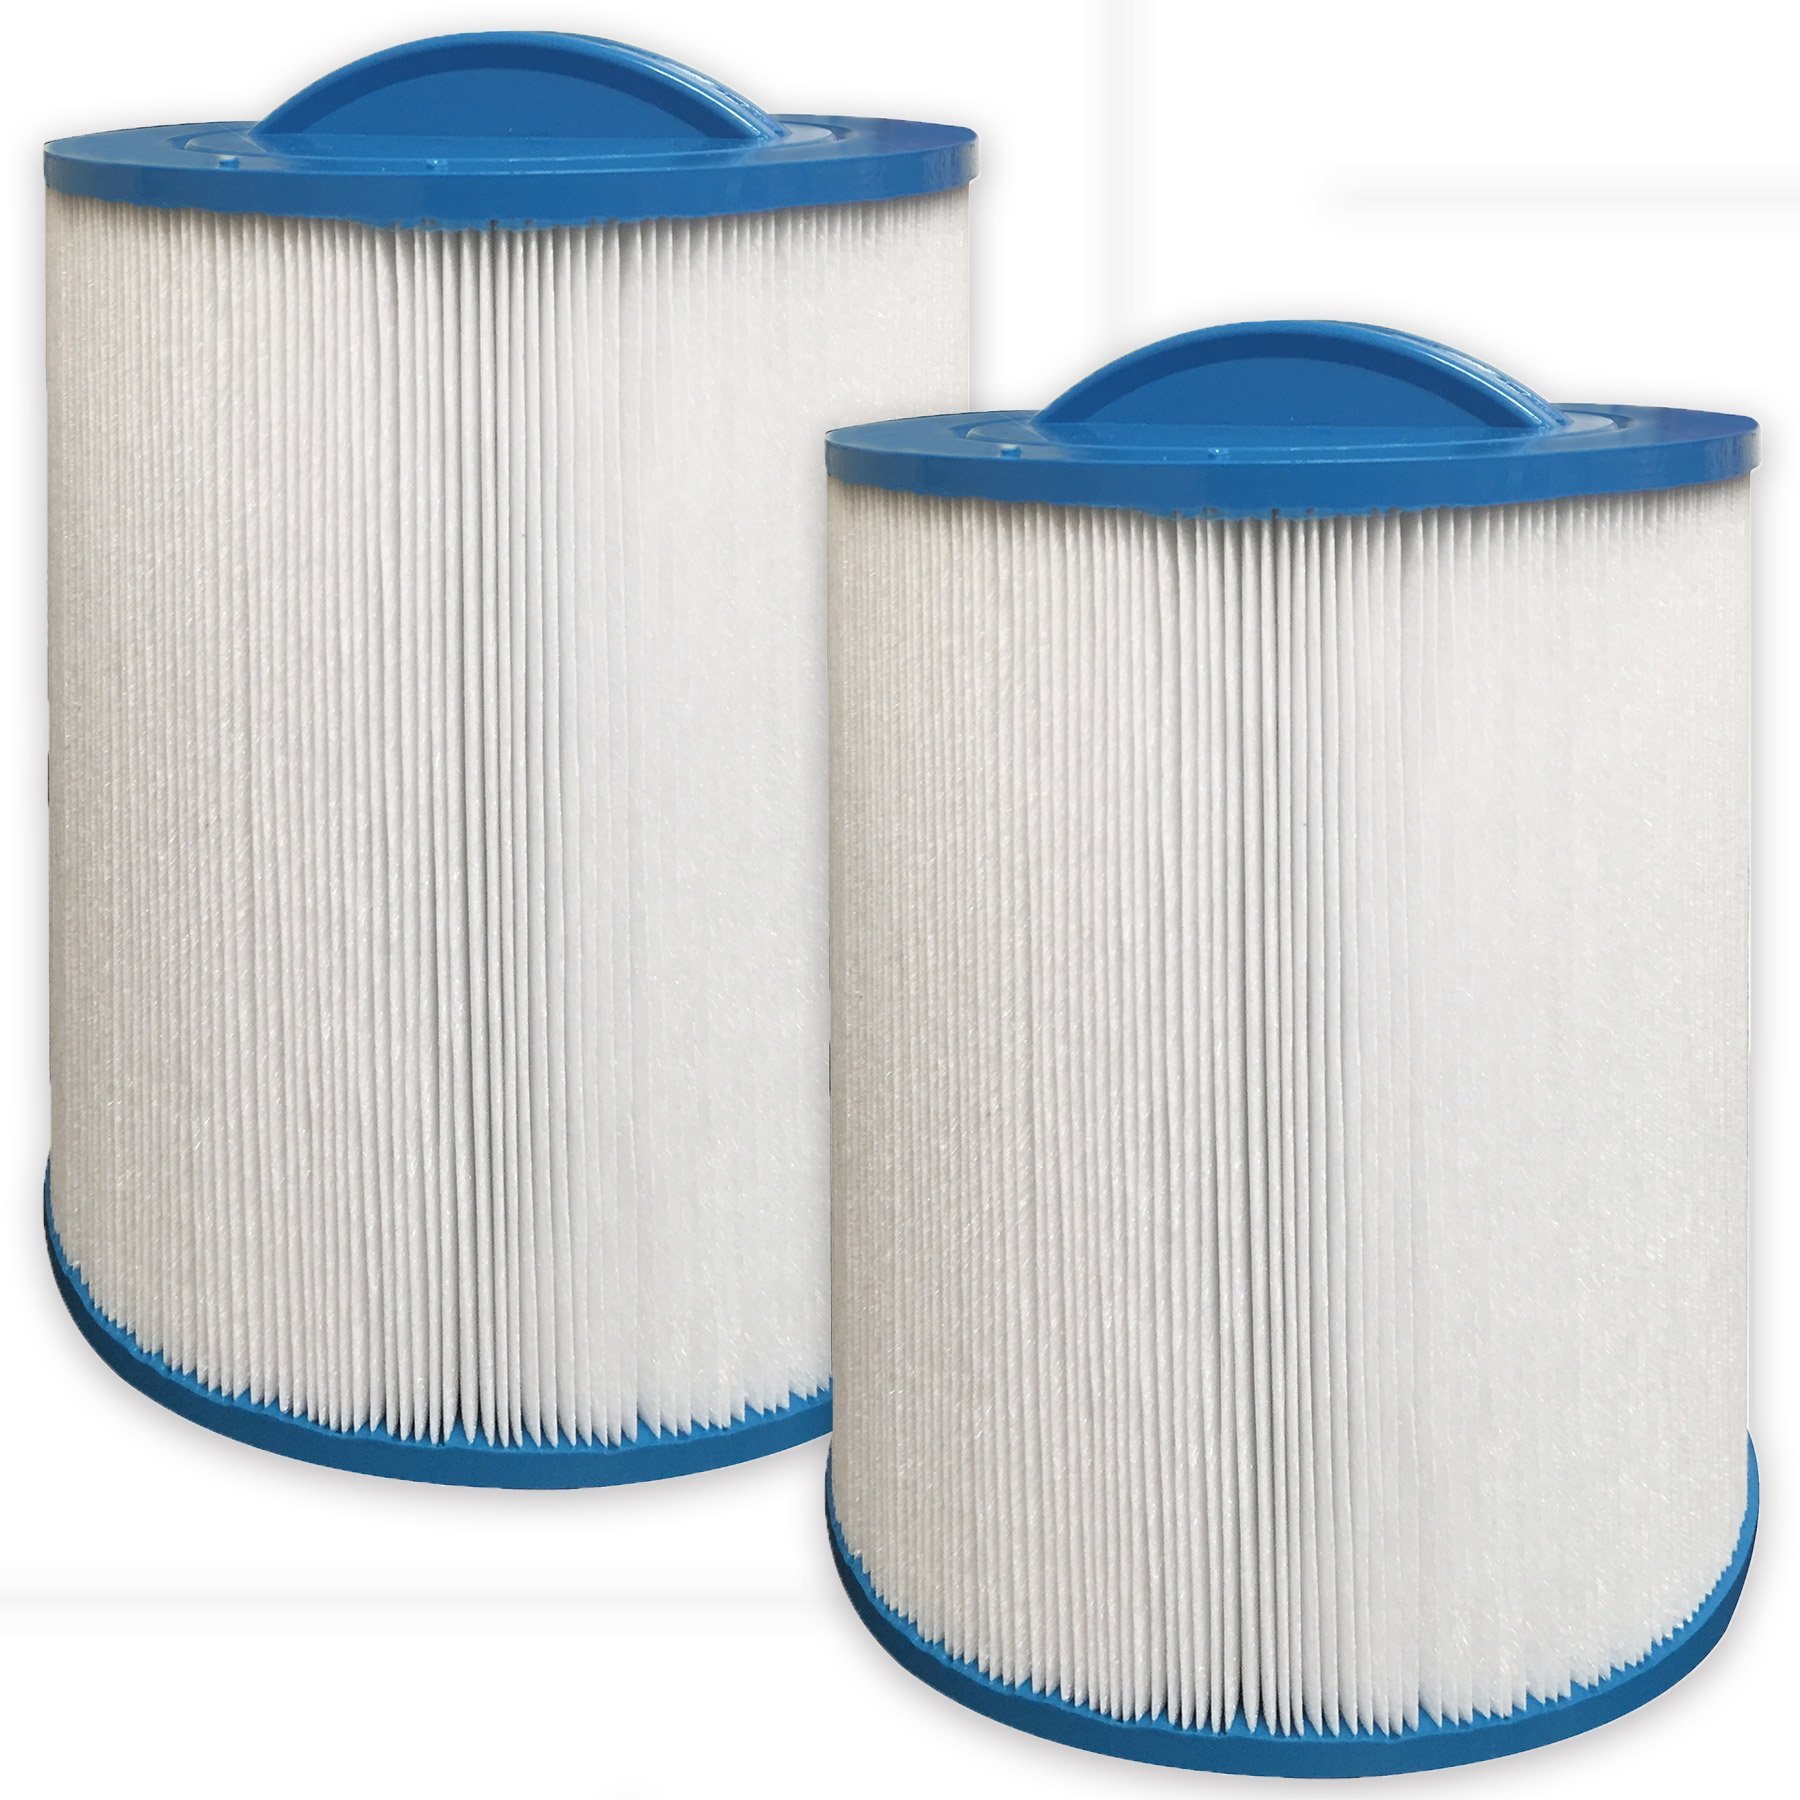 2 PACK GAURDIAN POOL/SPA Filter fits: Pleatco:PAS50SV-F2M, Unicel: 6CH-502, Filbur: FC-031 Artesian spas, MAJESTIC